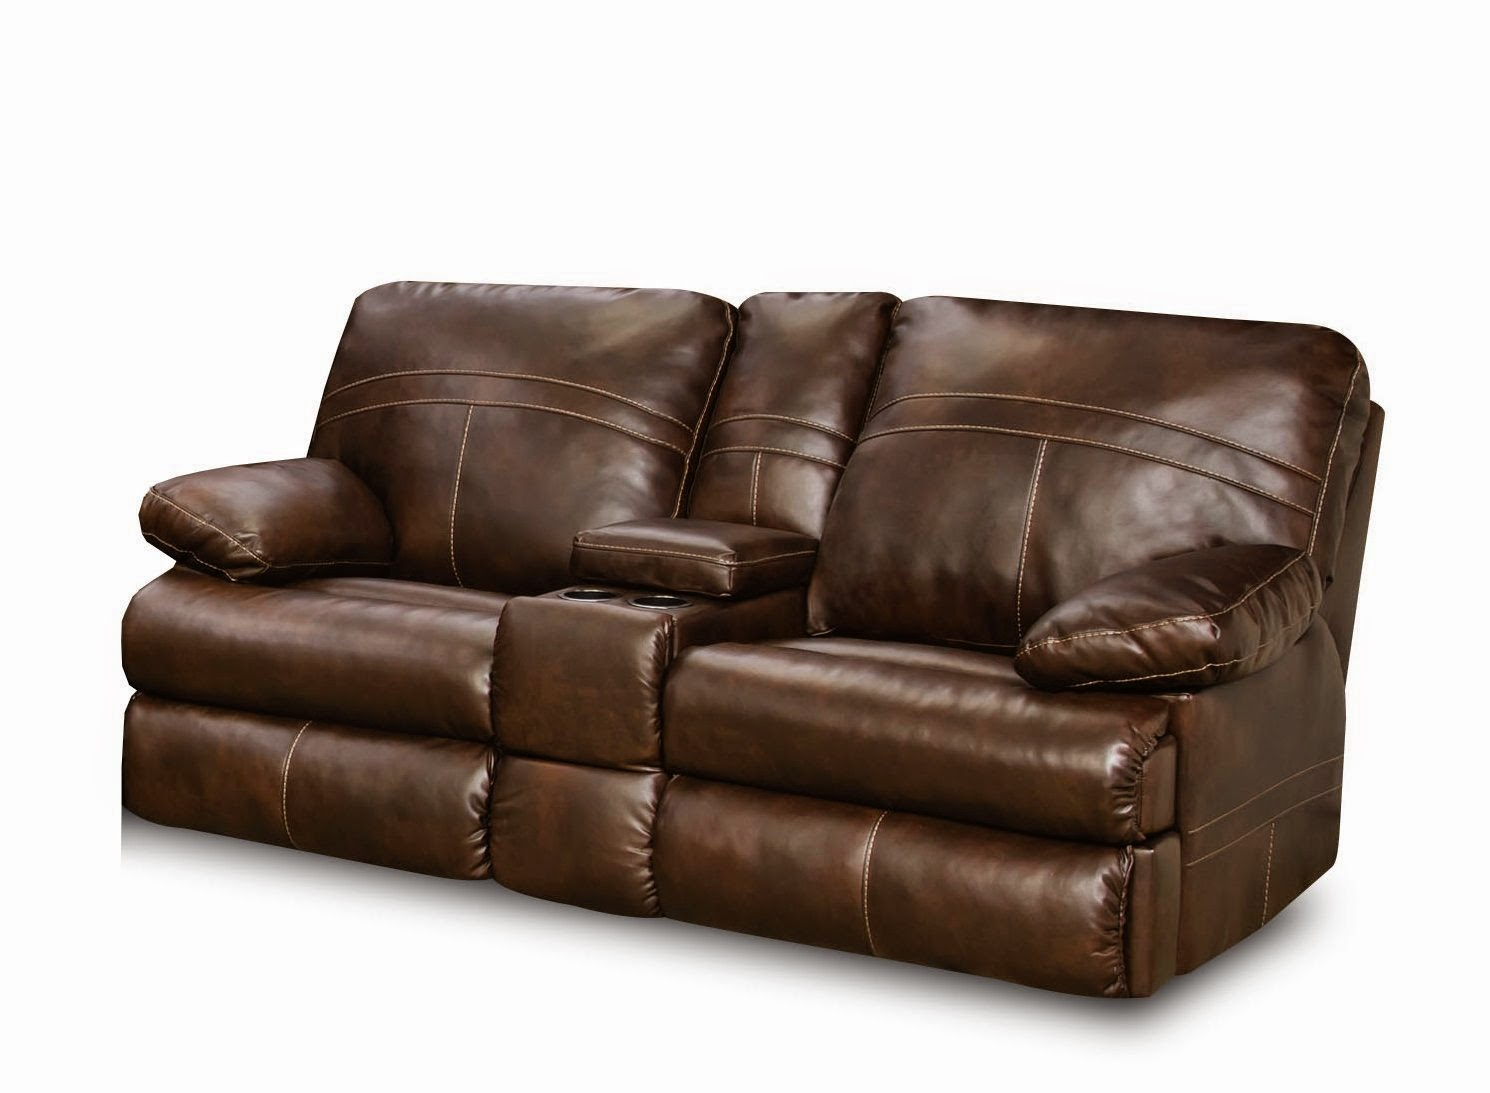 The best reclining leather sofa reviews simmons leather reclining sofa and loveseat Sofa loveseat